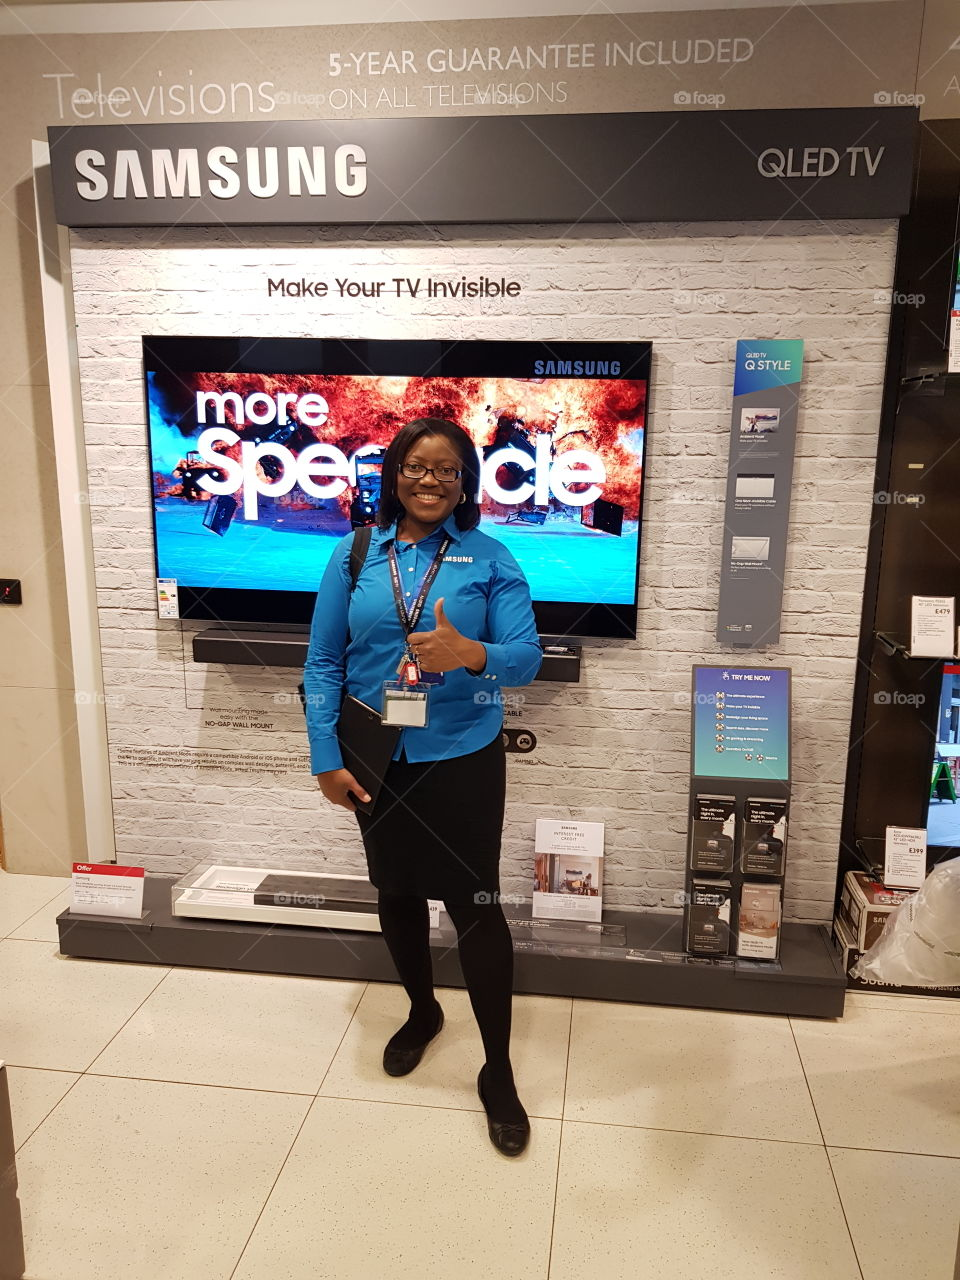 Samsung field force posing in front of QLED television display wall